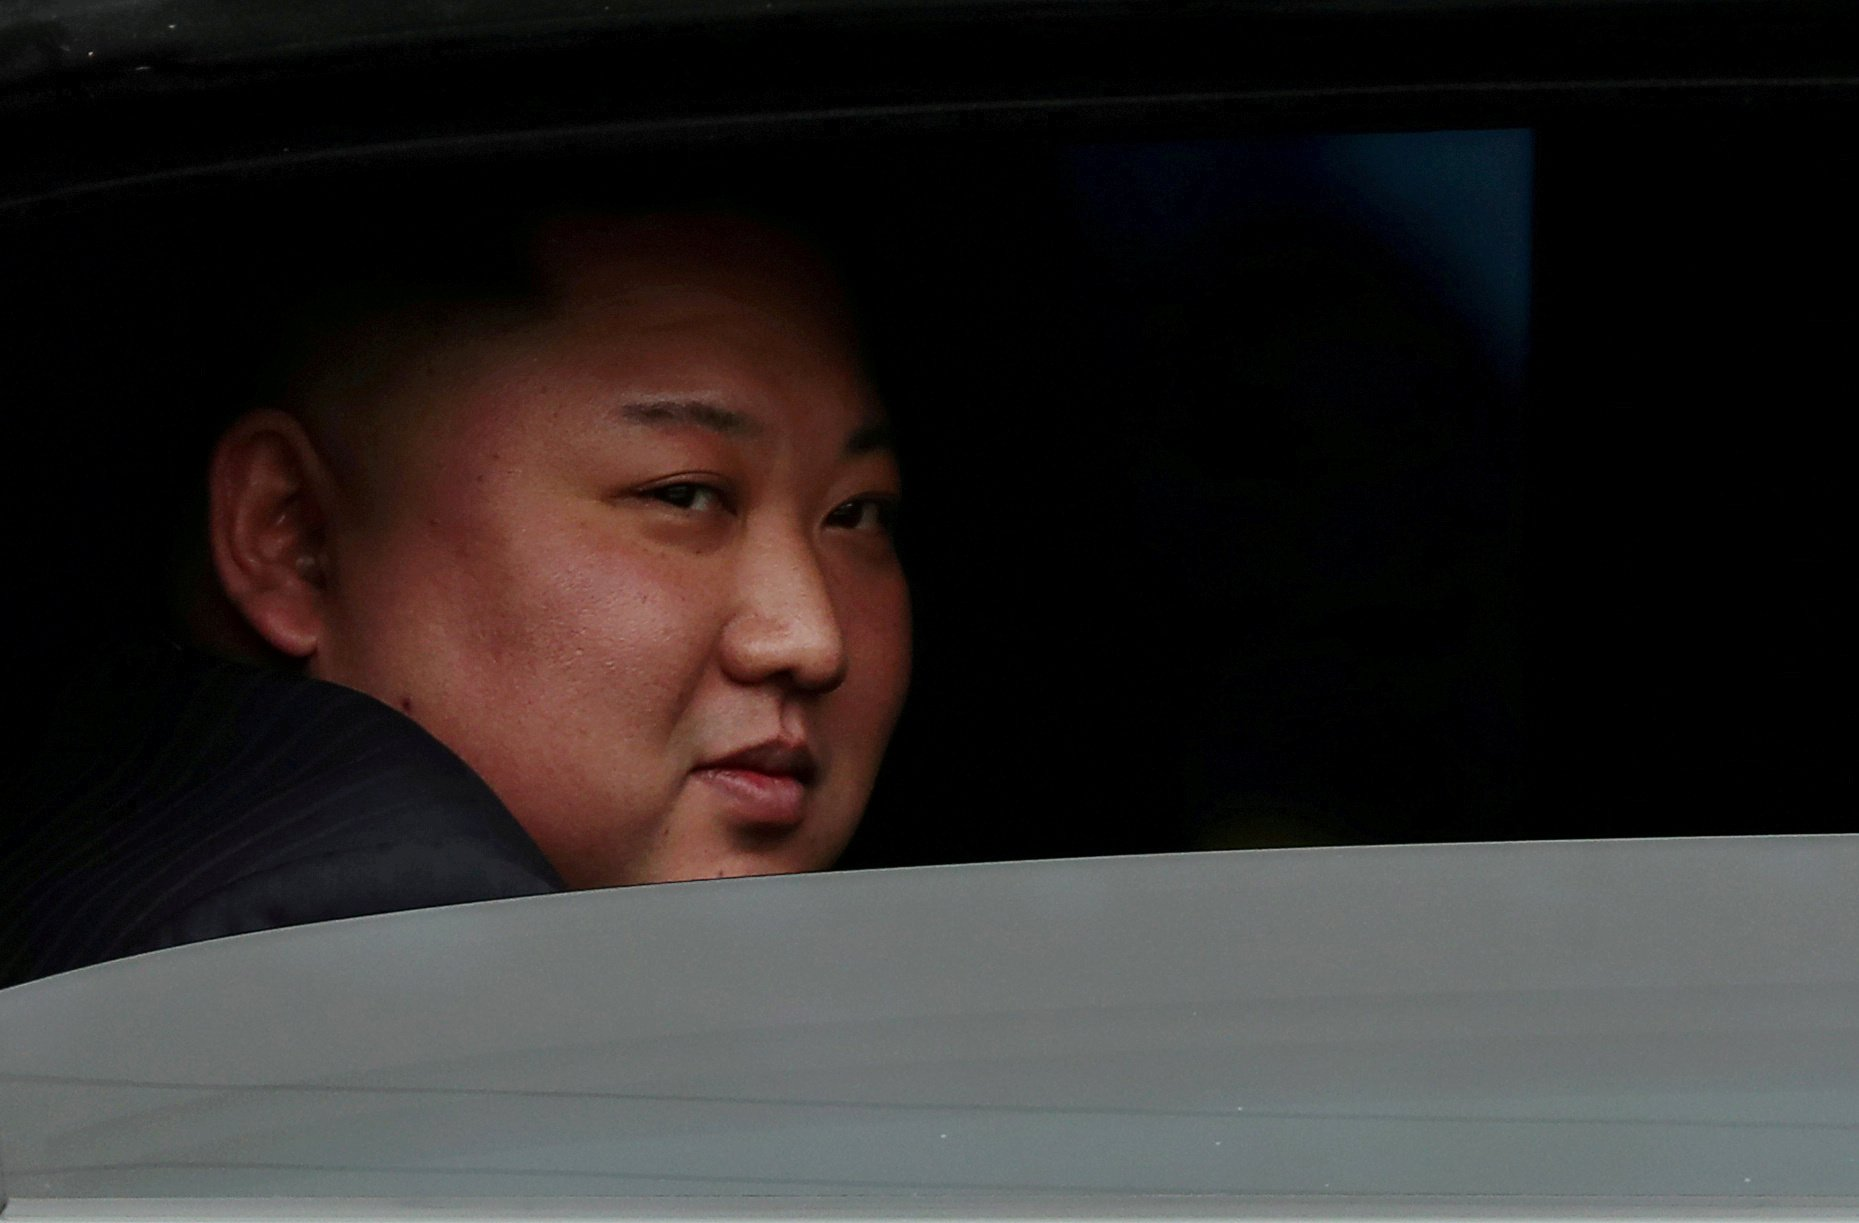 North Korea's leader Kim Jong Un sits in his vehicle after arriving at a railway station in Dong Dang, Vietnam, at the border with China, February 26, 2019. REUTERS/Athit Perawongmetha//File Photo